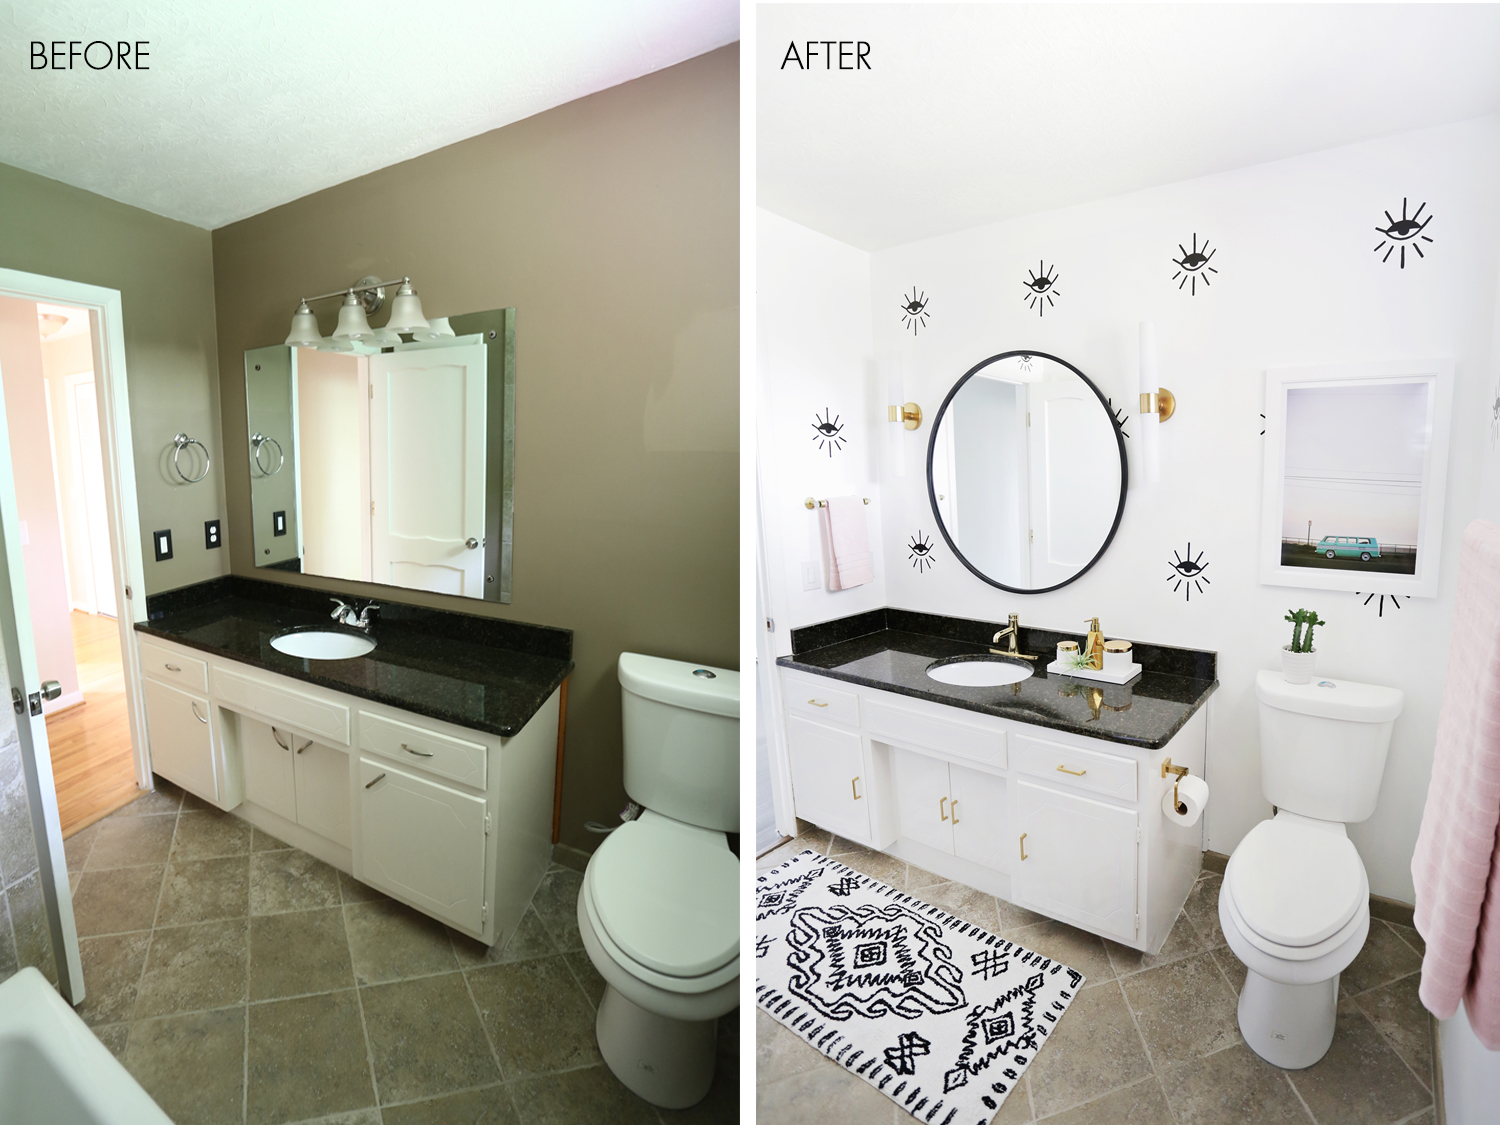 Real Bathroom Makeovers real bathroom makeovers | interior design ideas